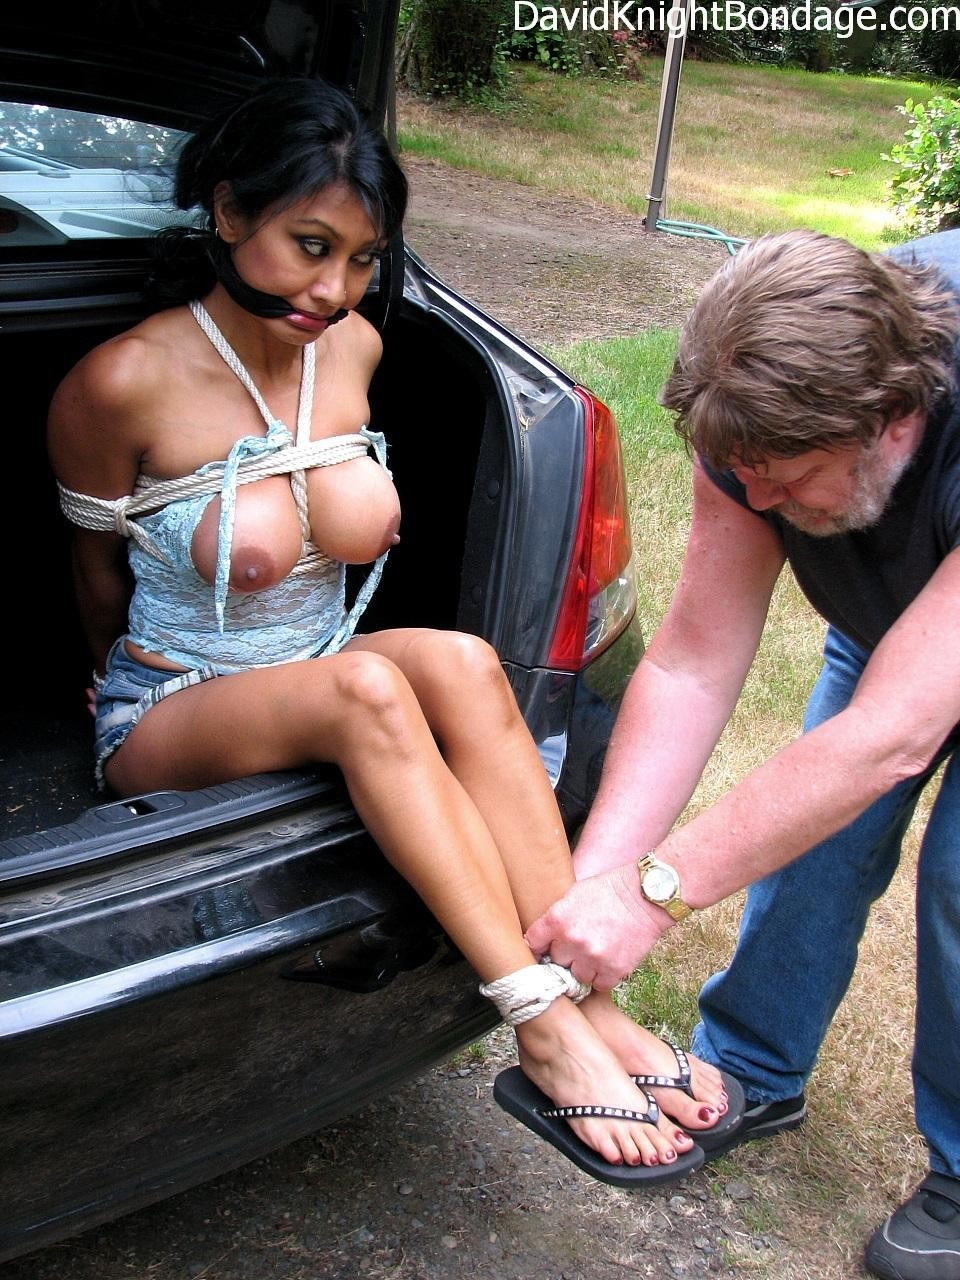 slaveauctions:  The slaver wanted to make sure his newest girl wasn't going to get away. Once the knots were tightened she was pushed into the trunk and driven to the auction.